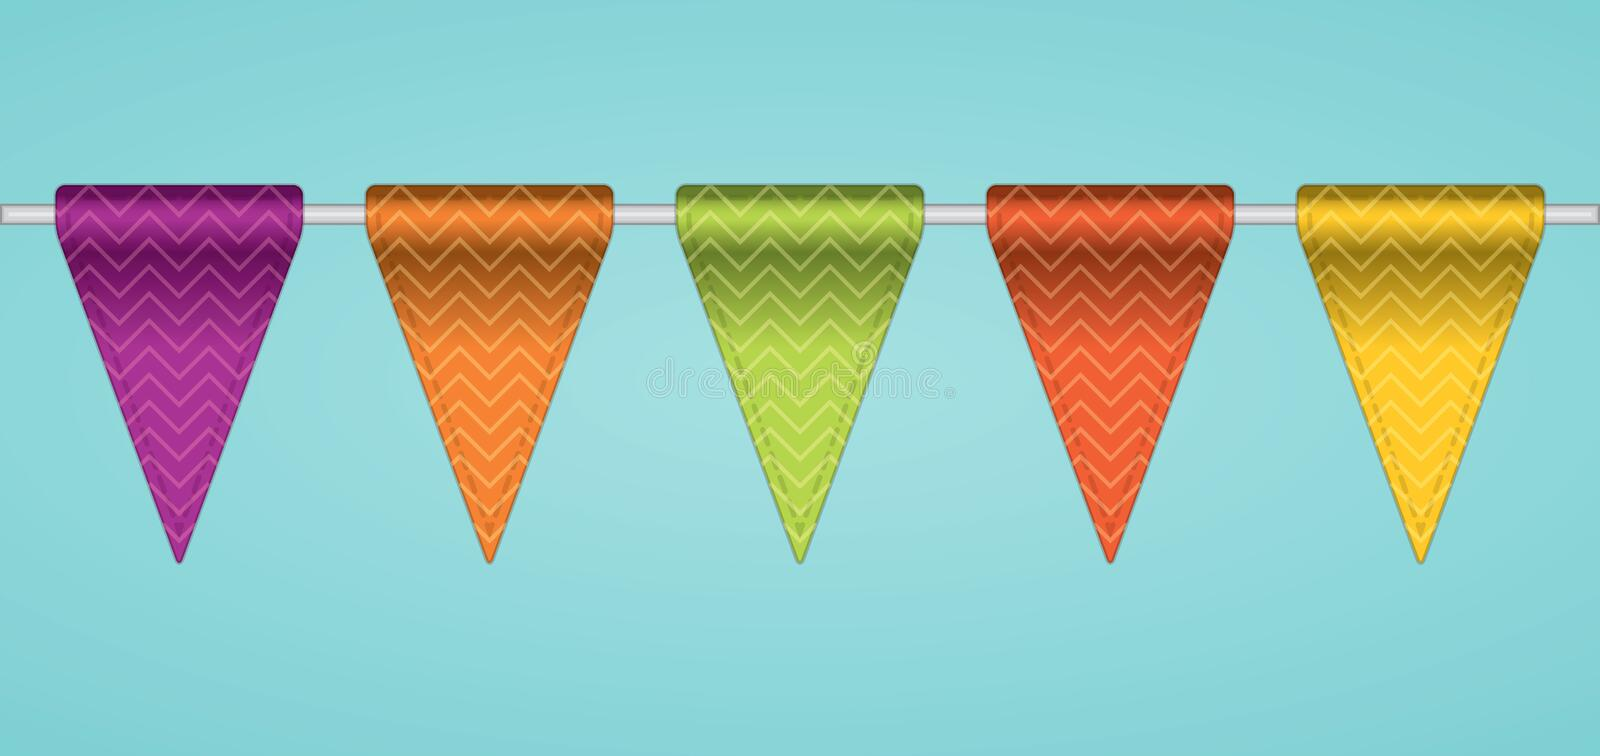 Bunting flags. Bunting flags, decoration flags. Vector illustration royalty free illustration